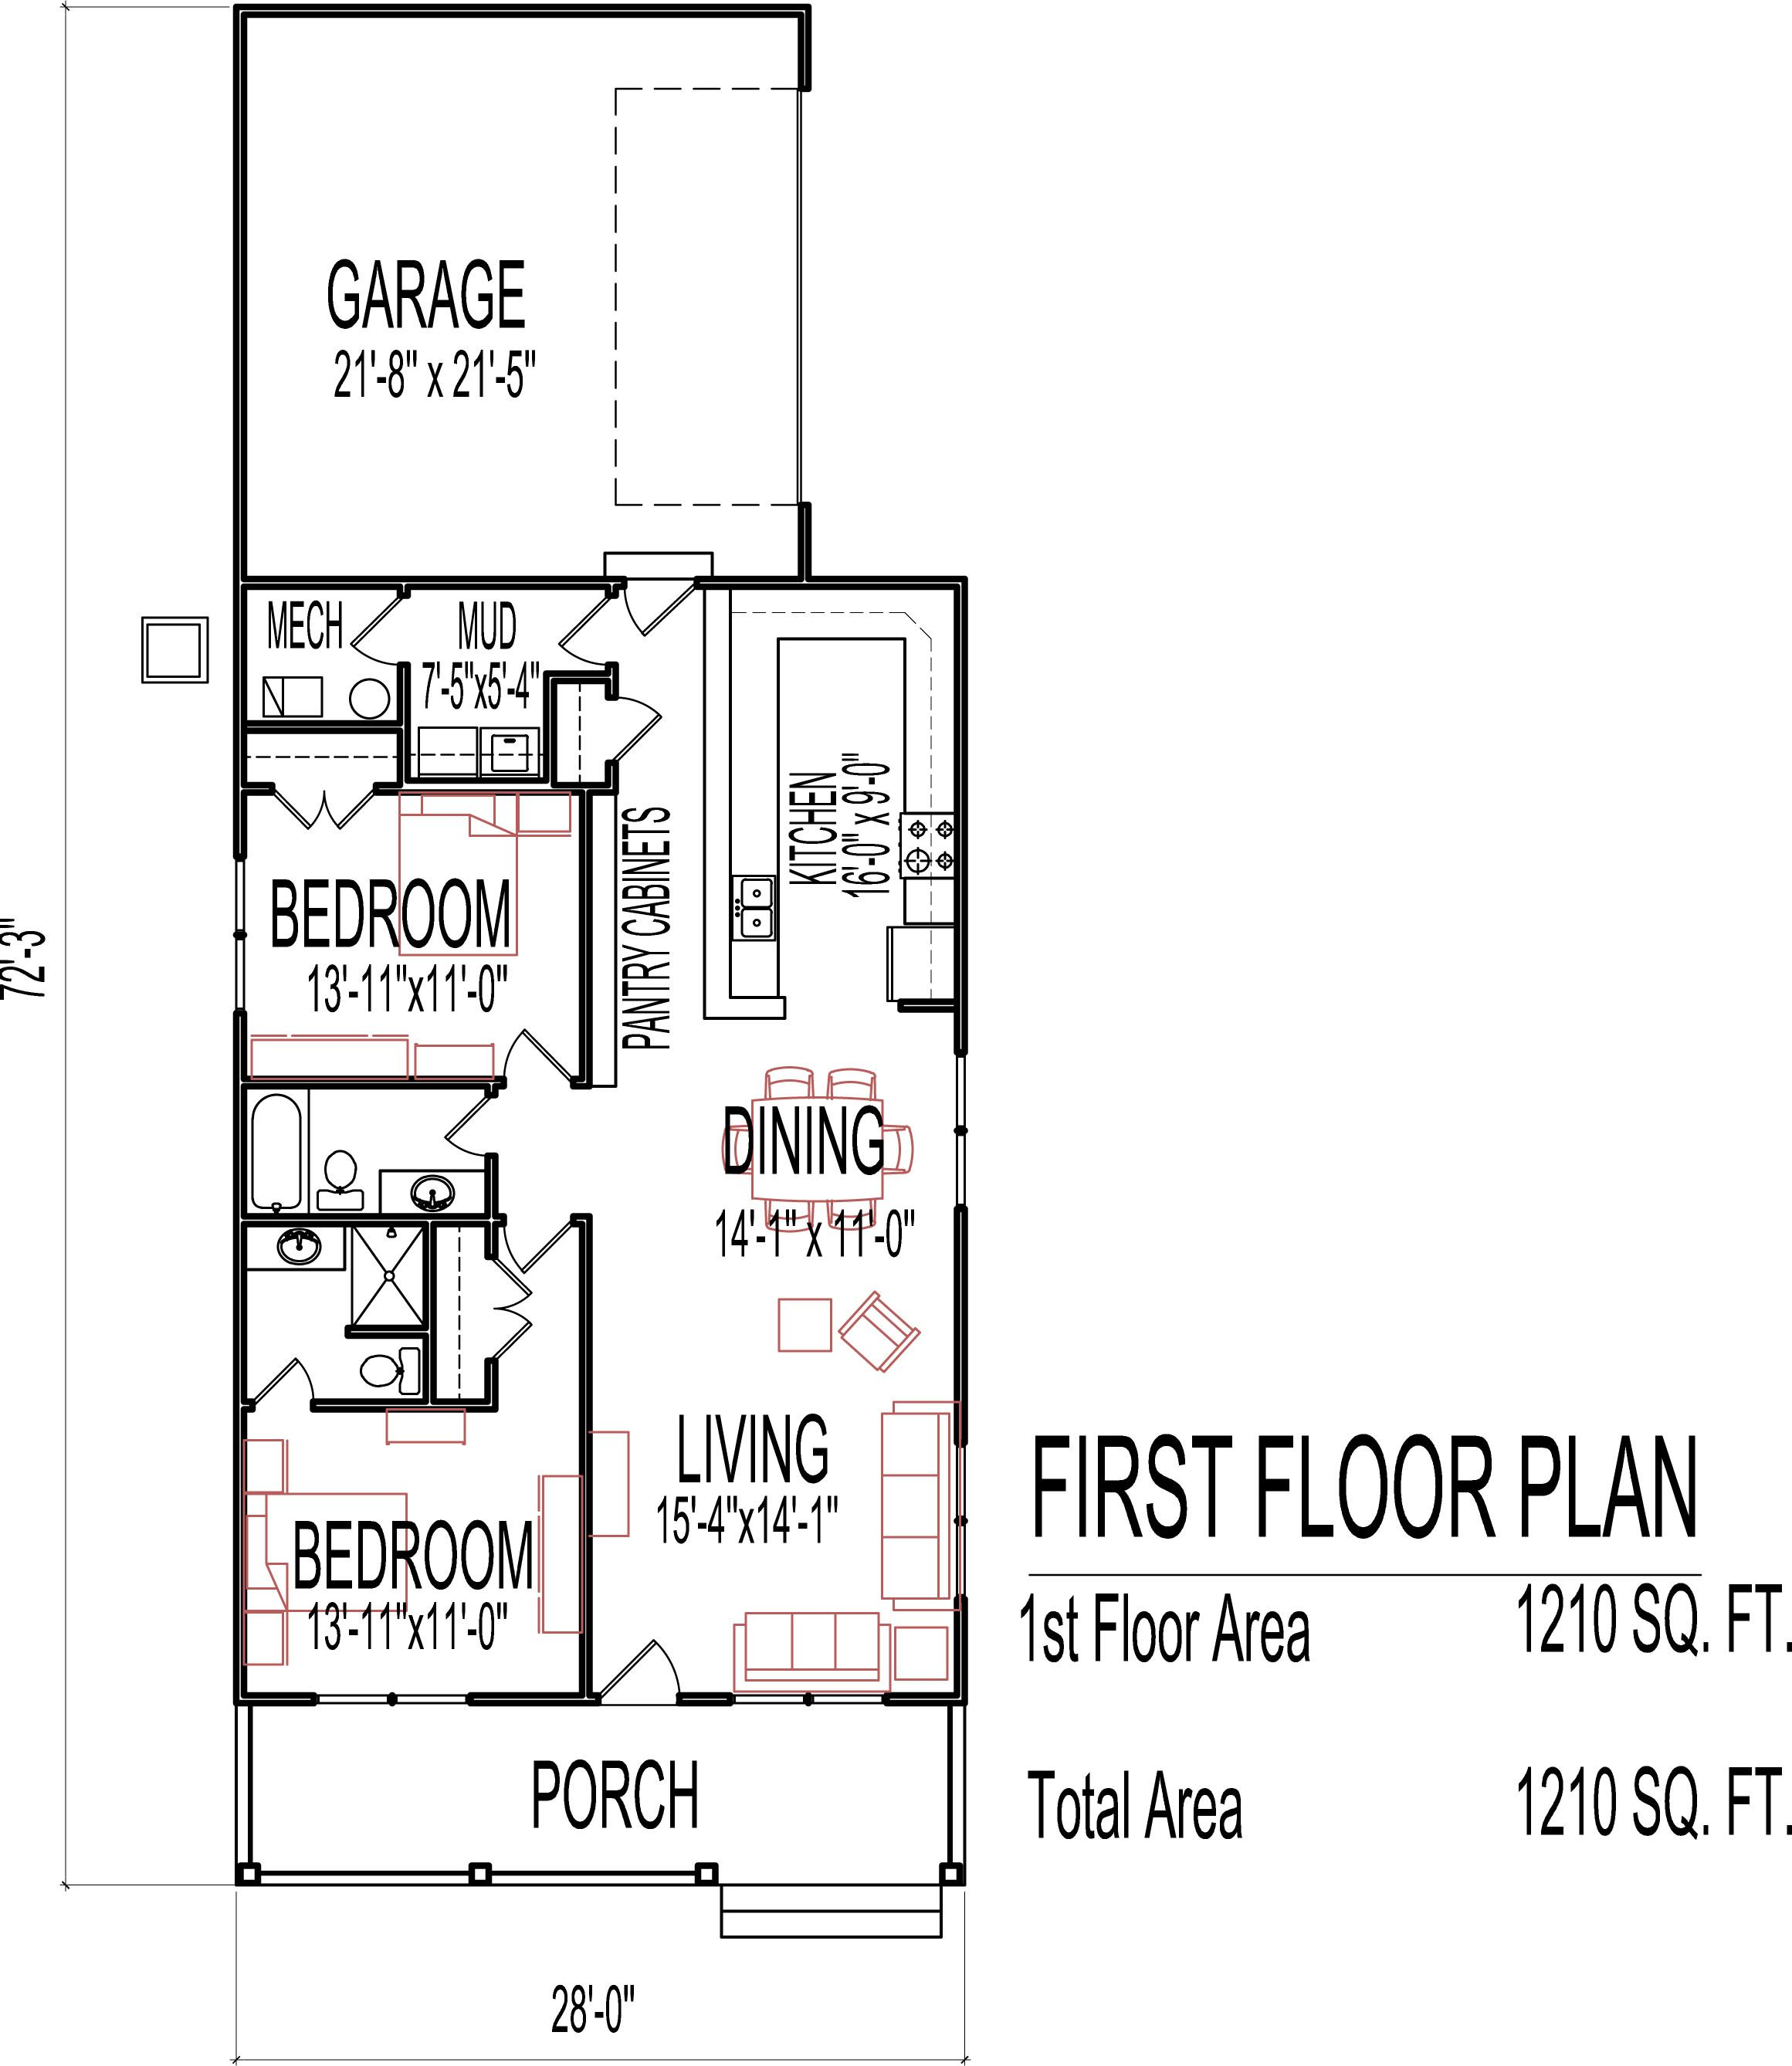 Small low cost economical 2 bedroom 2 bath 1200 sq ft 1 and 1 2 story floor plans